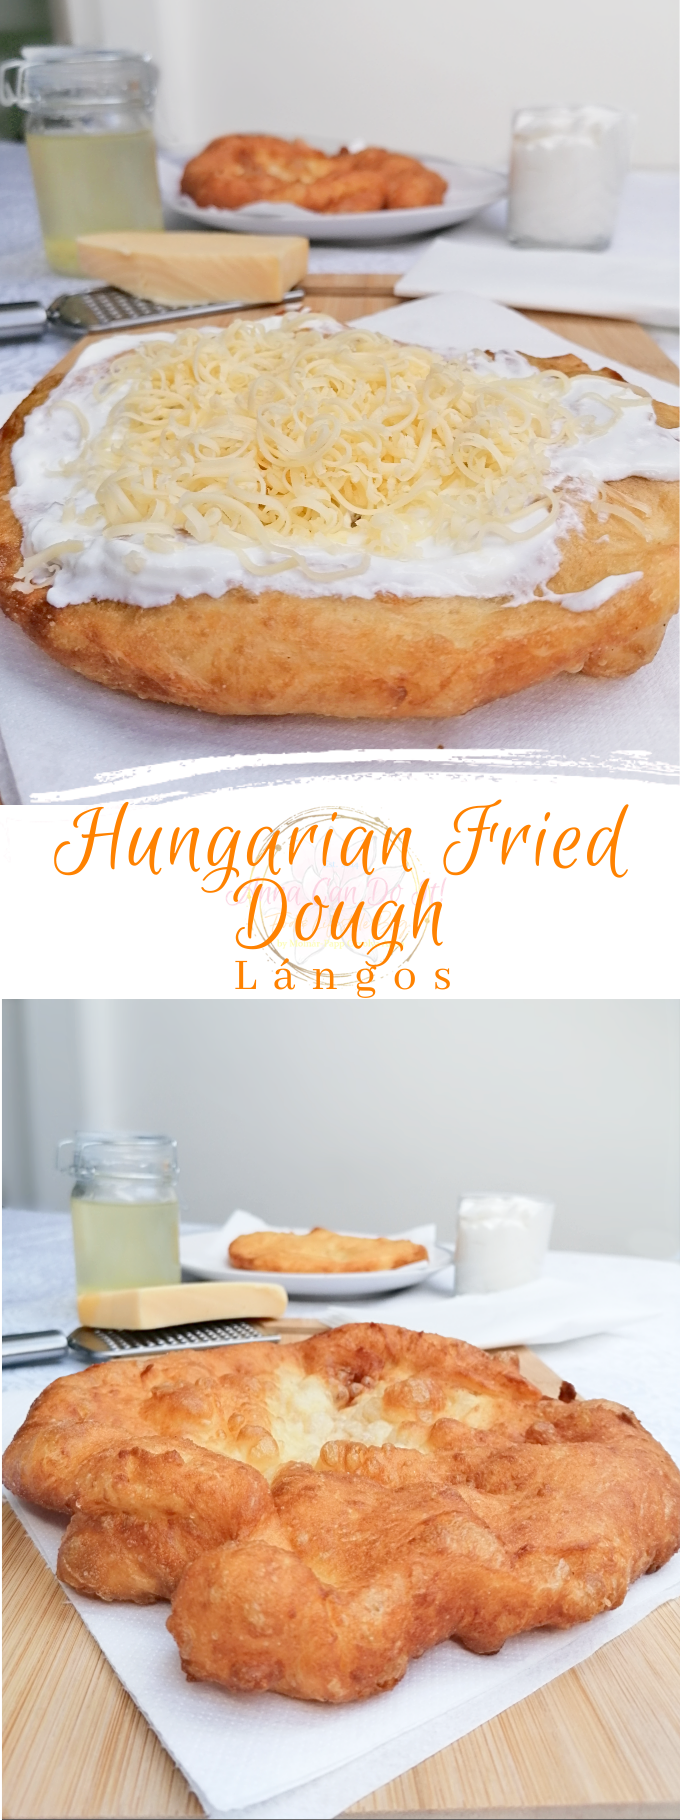 Hungarian Fried Dough - Lángos - Anna Can Do It!